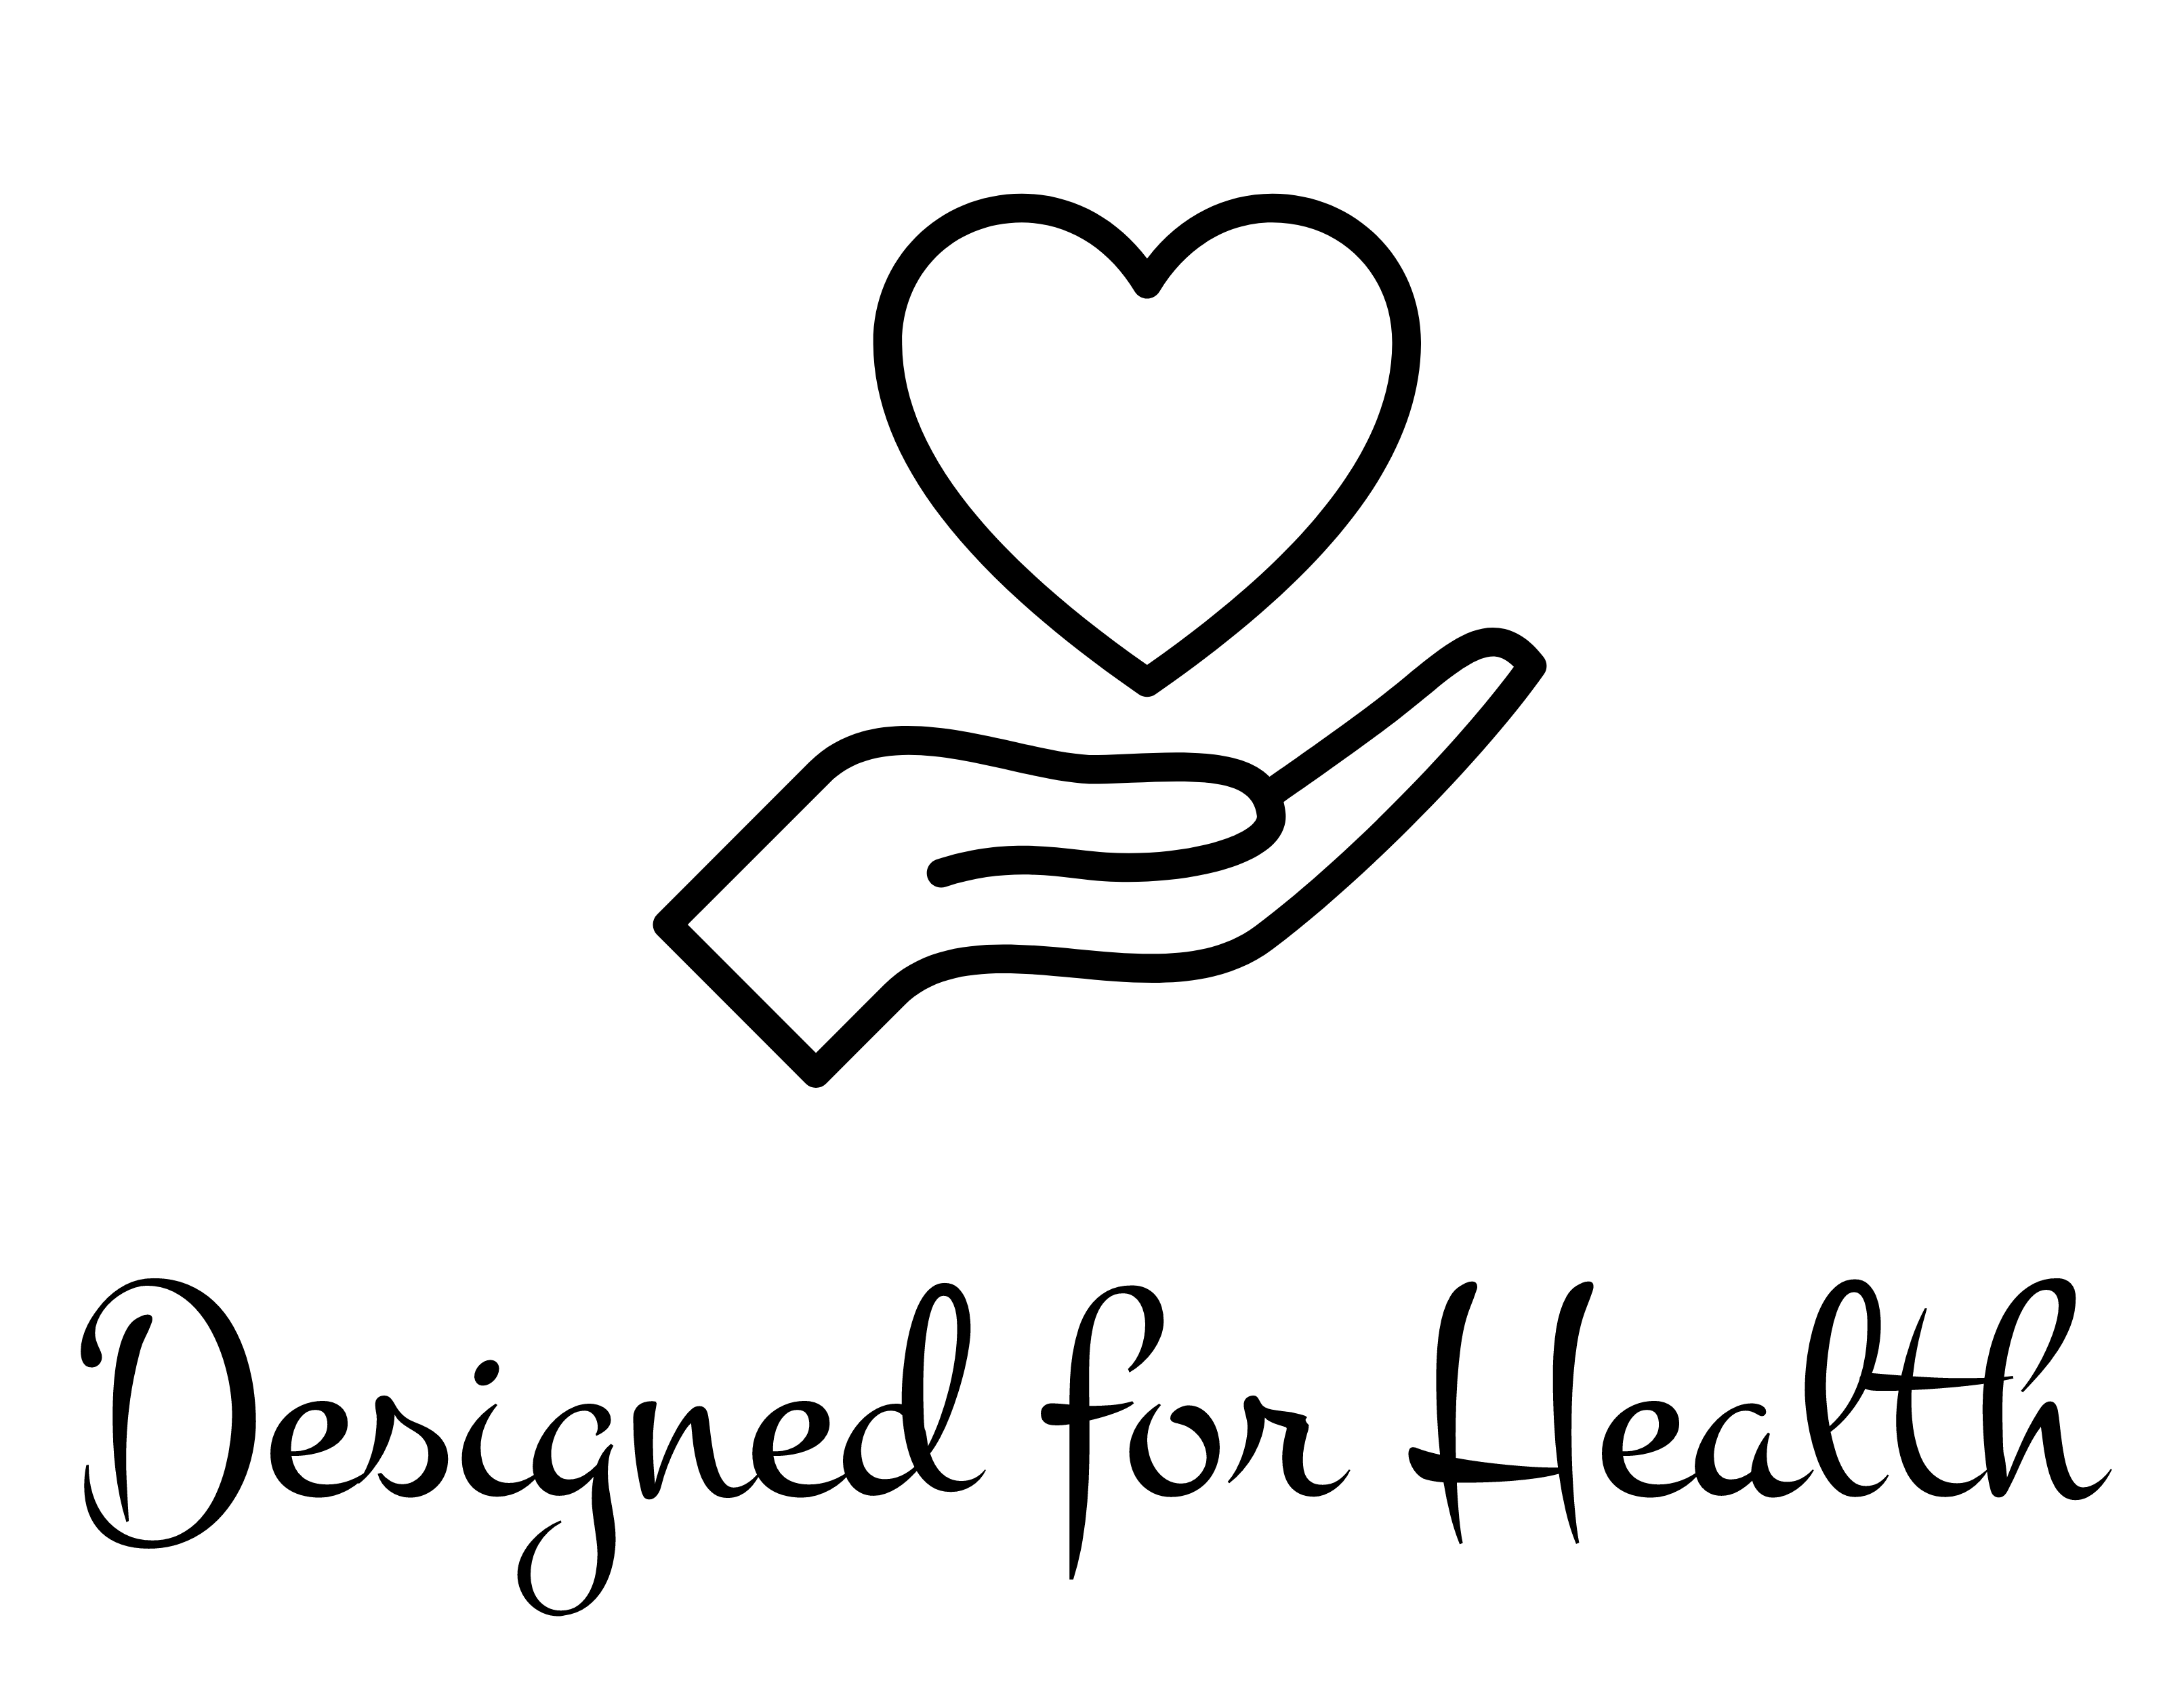 dark_logo_transparent